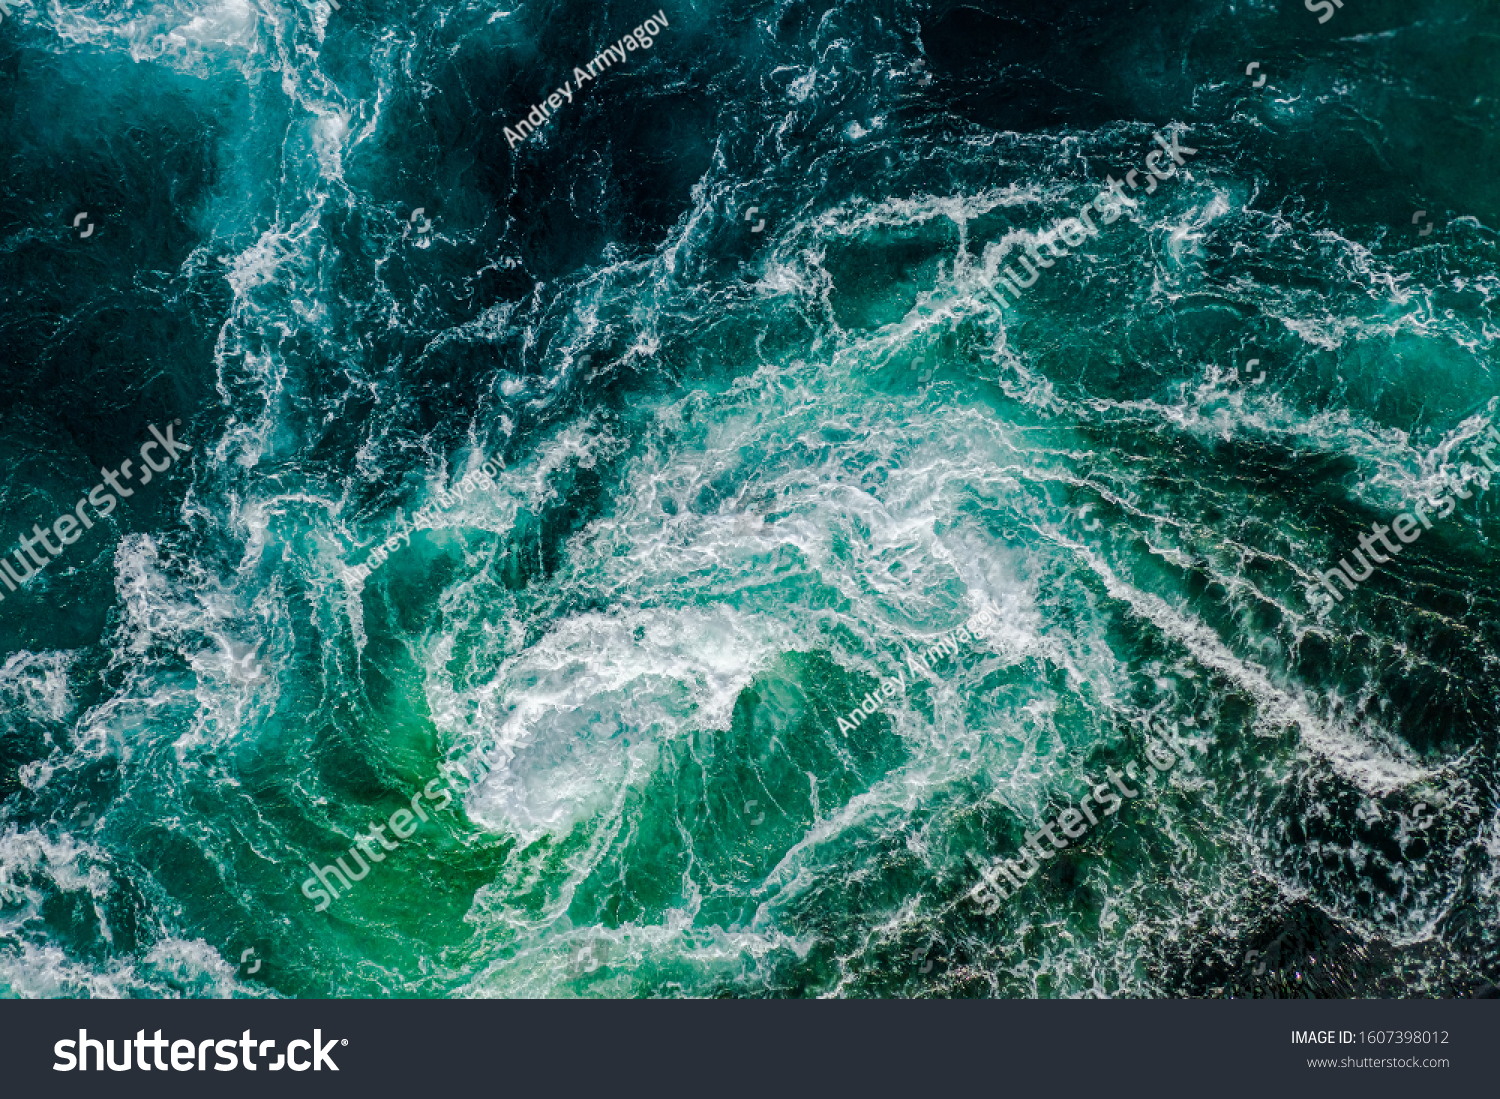 Abstract background. Waves of water of the river and the sea meet each other during high tide and low tide. Whirlpools of the maelstrom of Saltstraumen, Nordland, Norway #1607398012